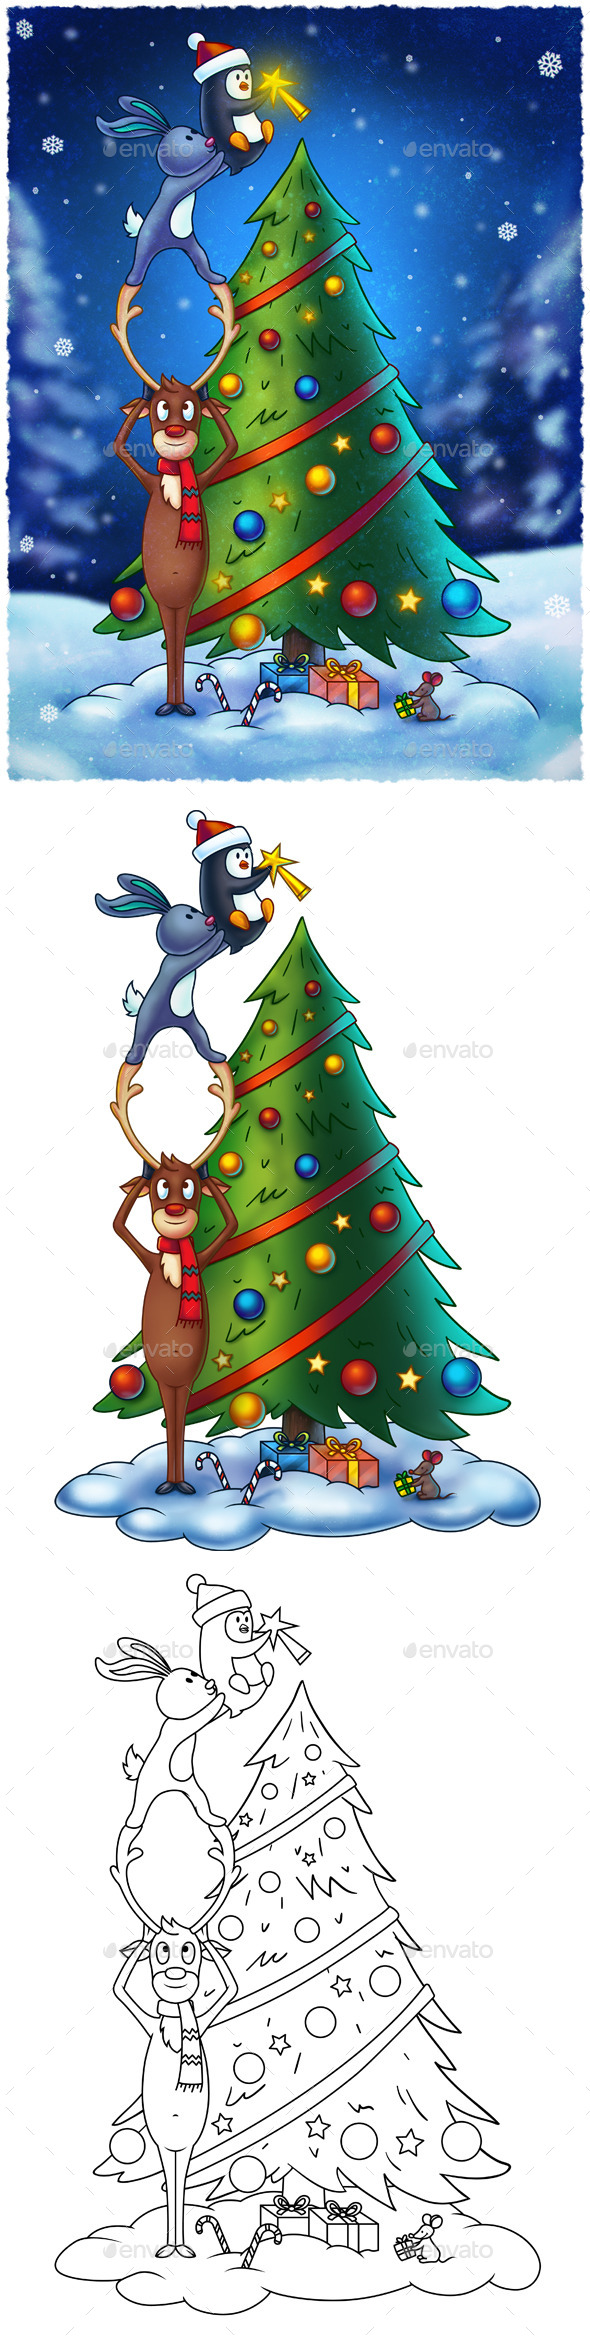 Animals Decorating a Christmas Tree - Illustrations Graphics